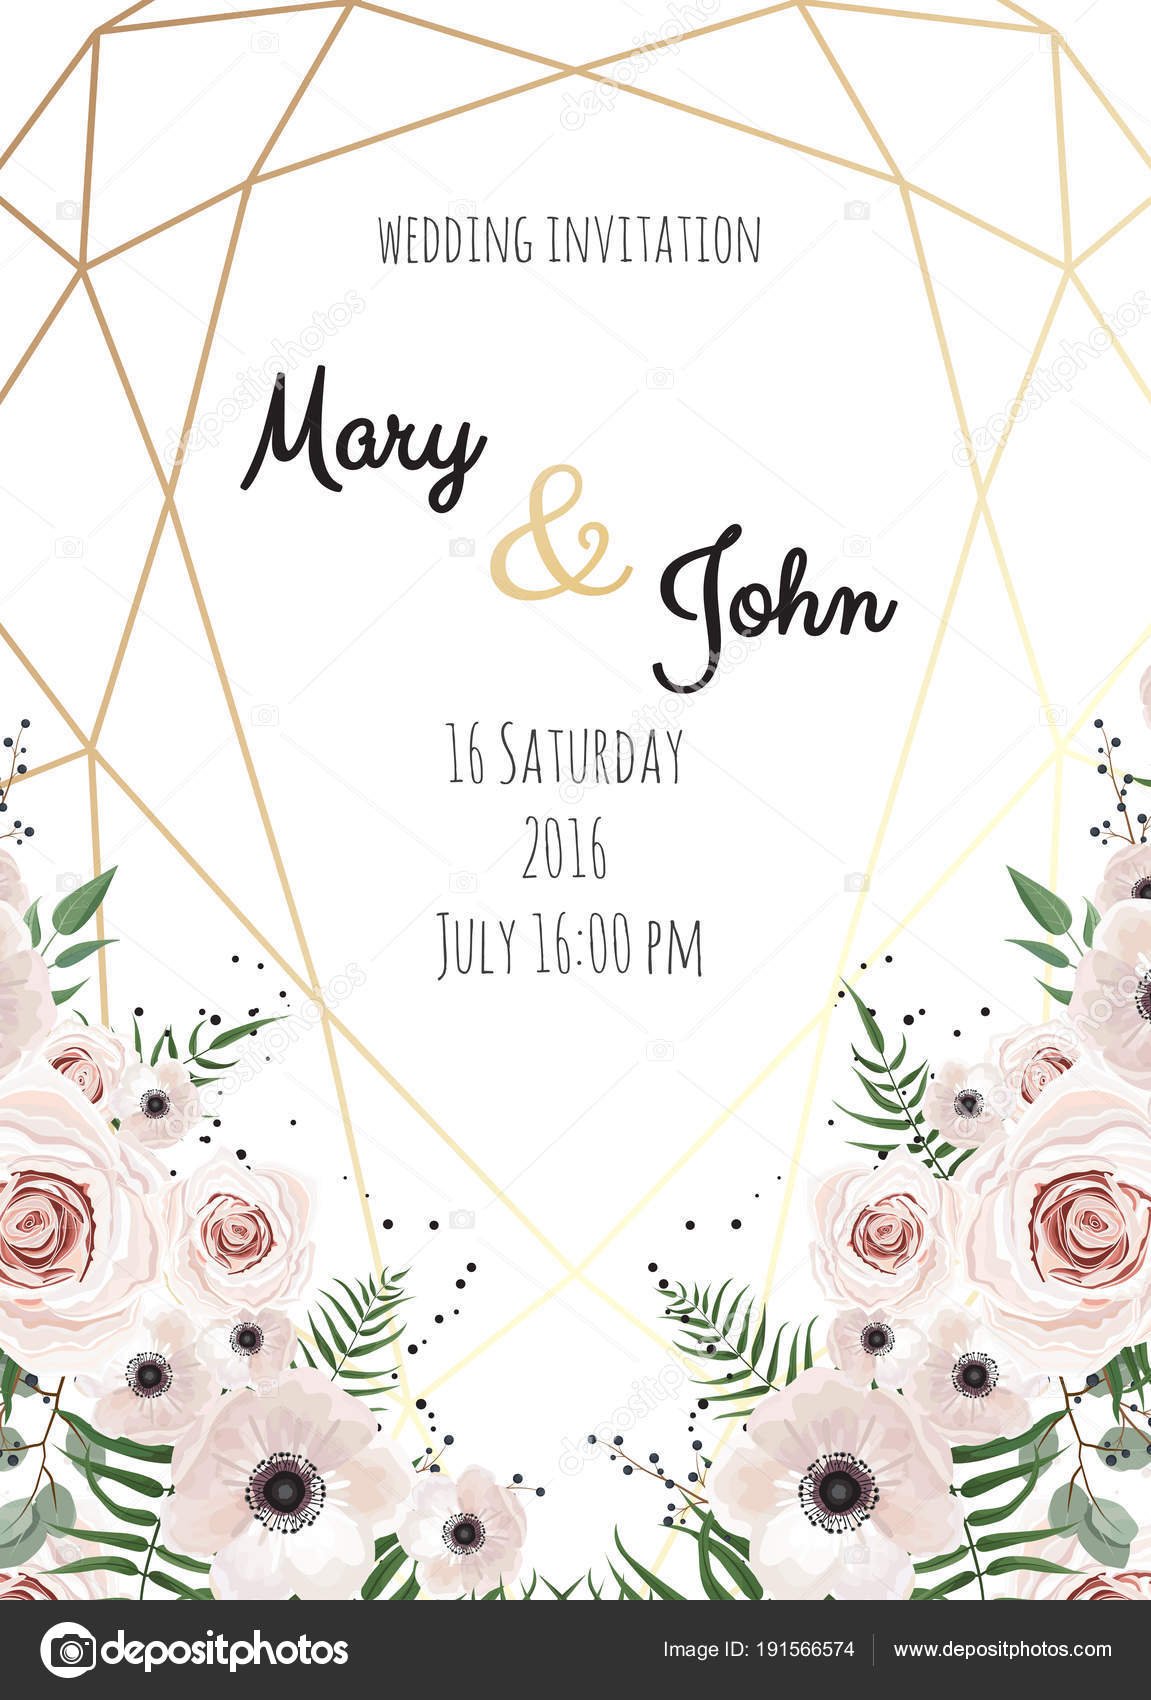 Vector invitation with handmade floral elements with polygonal frame vector invitation with handmade floral elements with polygonal frame wedding invitation cards with floral elements stopboris Gallery